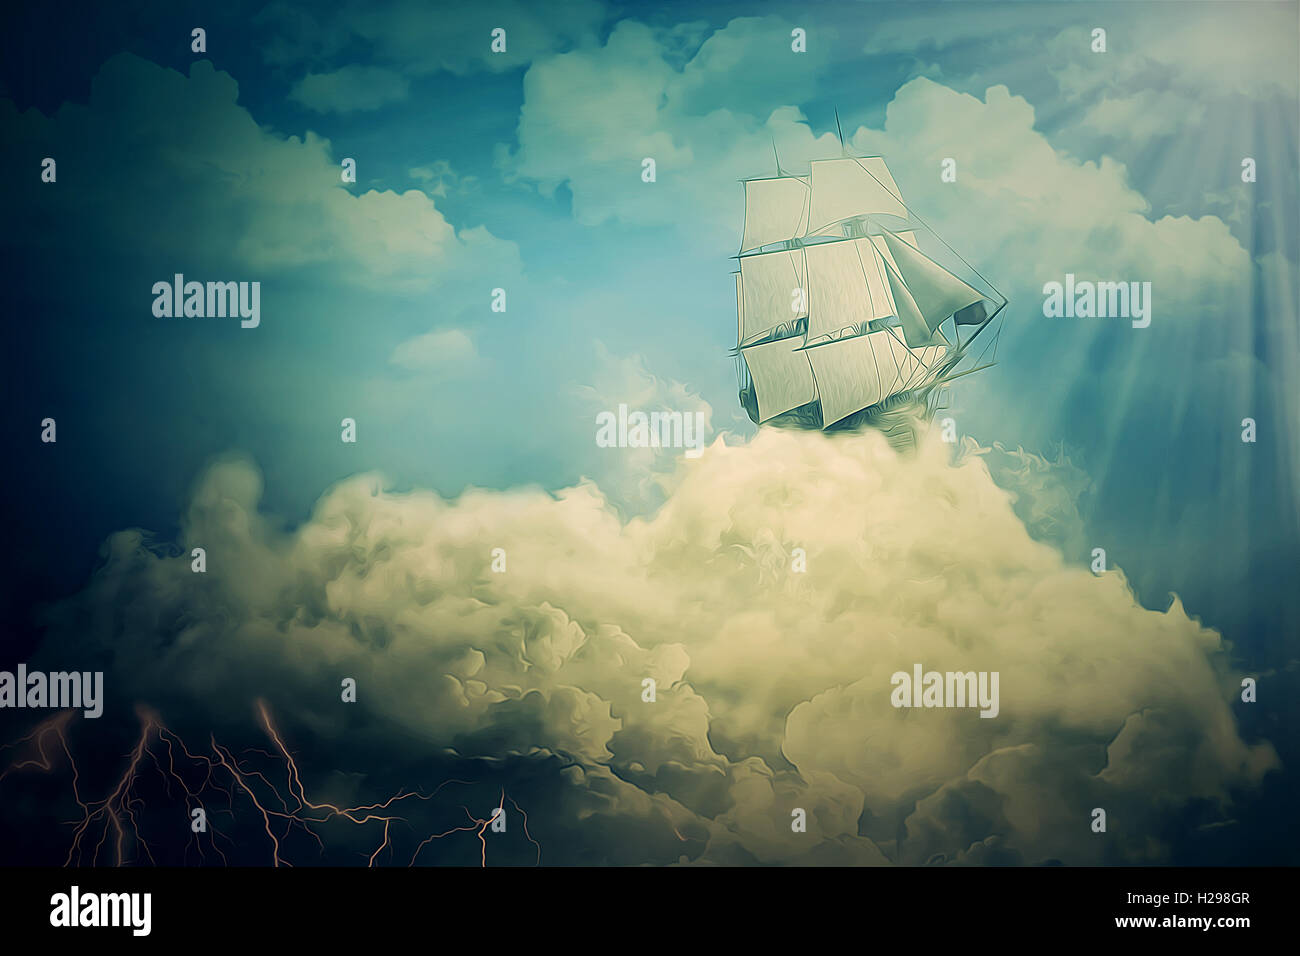 Surreal screensaver with an old ship sailing in the clouds - Surreal screensavers ...